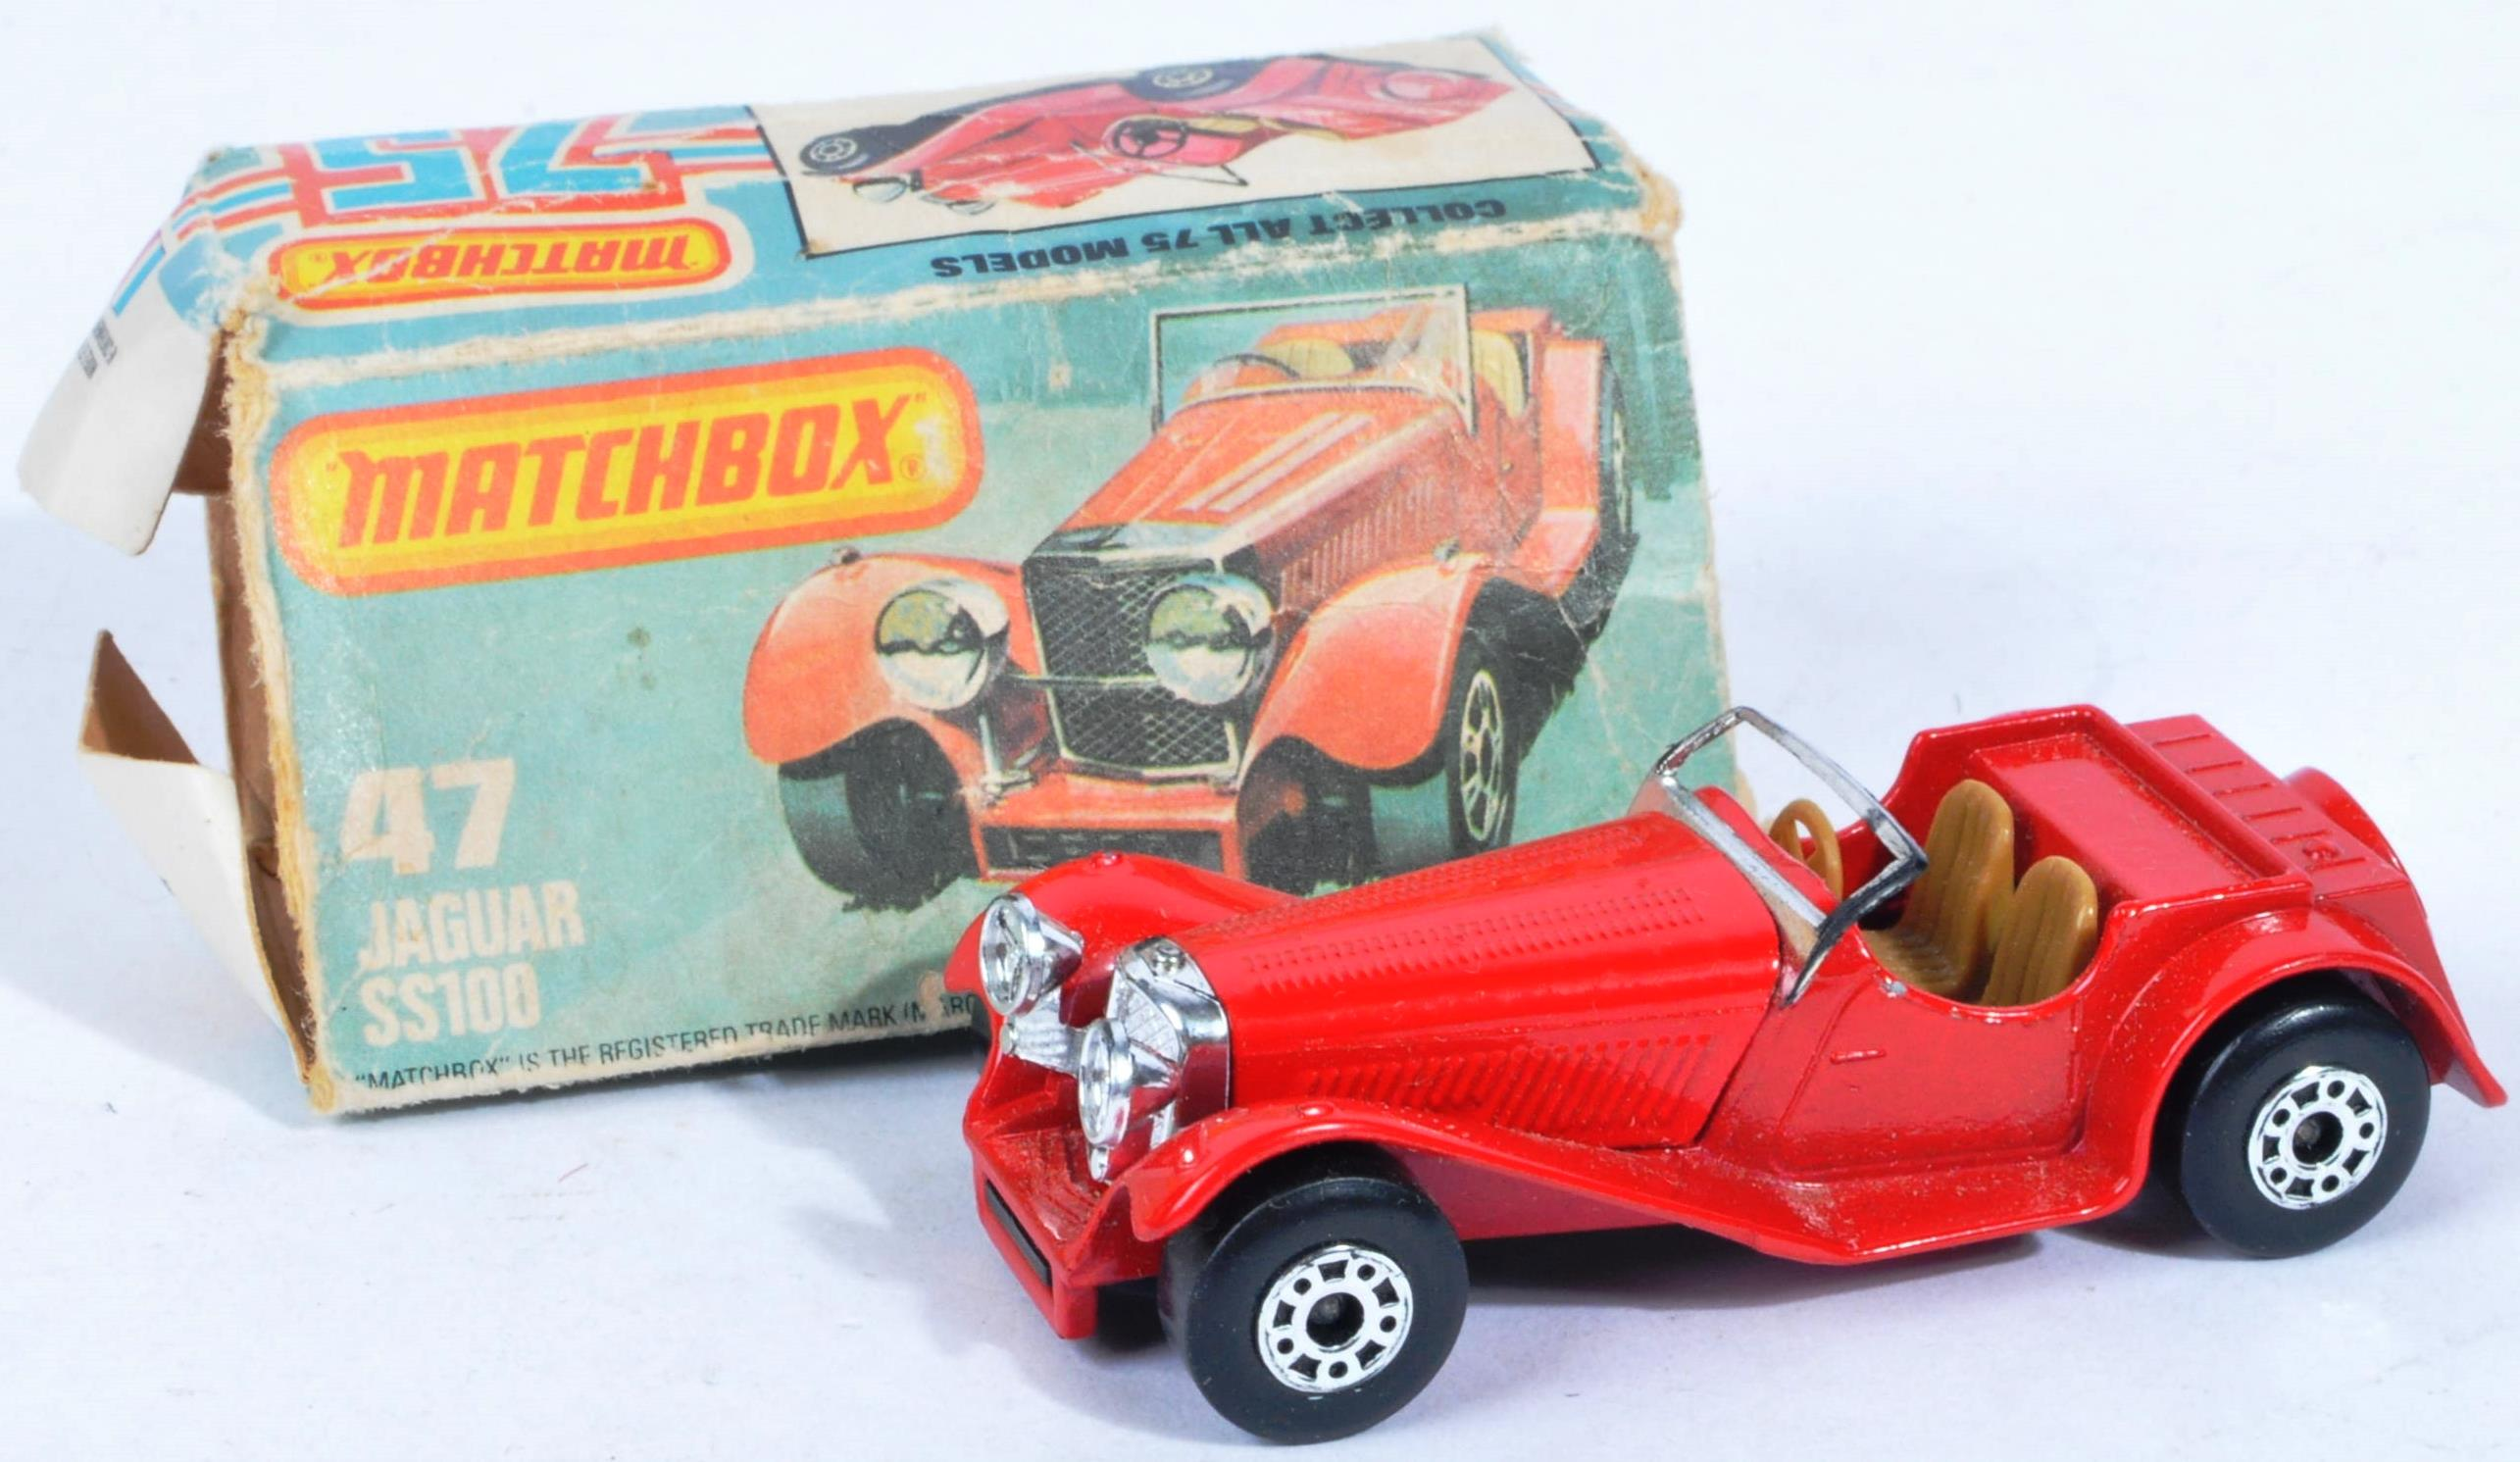 LARGE COLLECTION OF LESNEY MATCHBOX DIECAST MODELS - Image 3 of 8